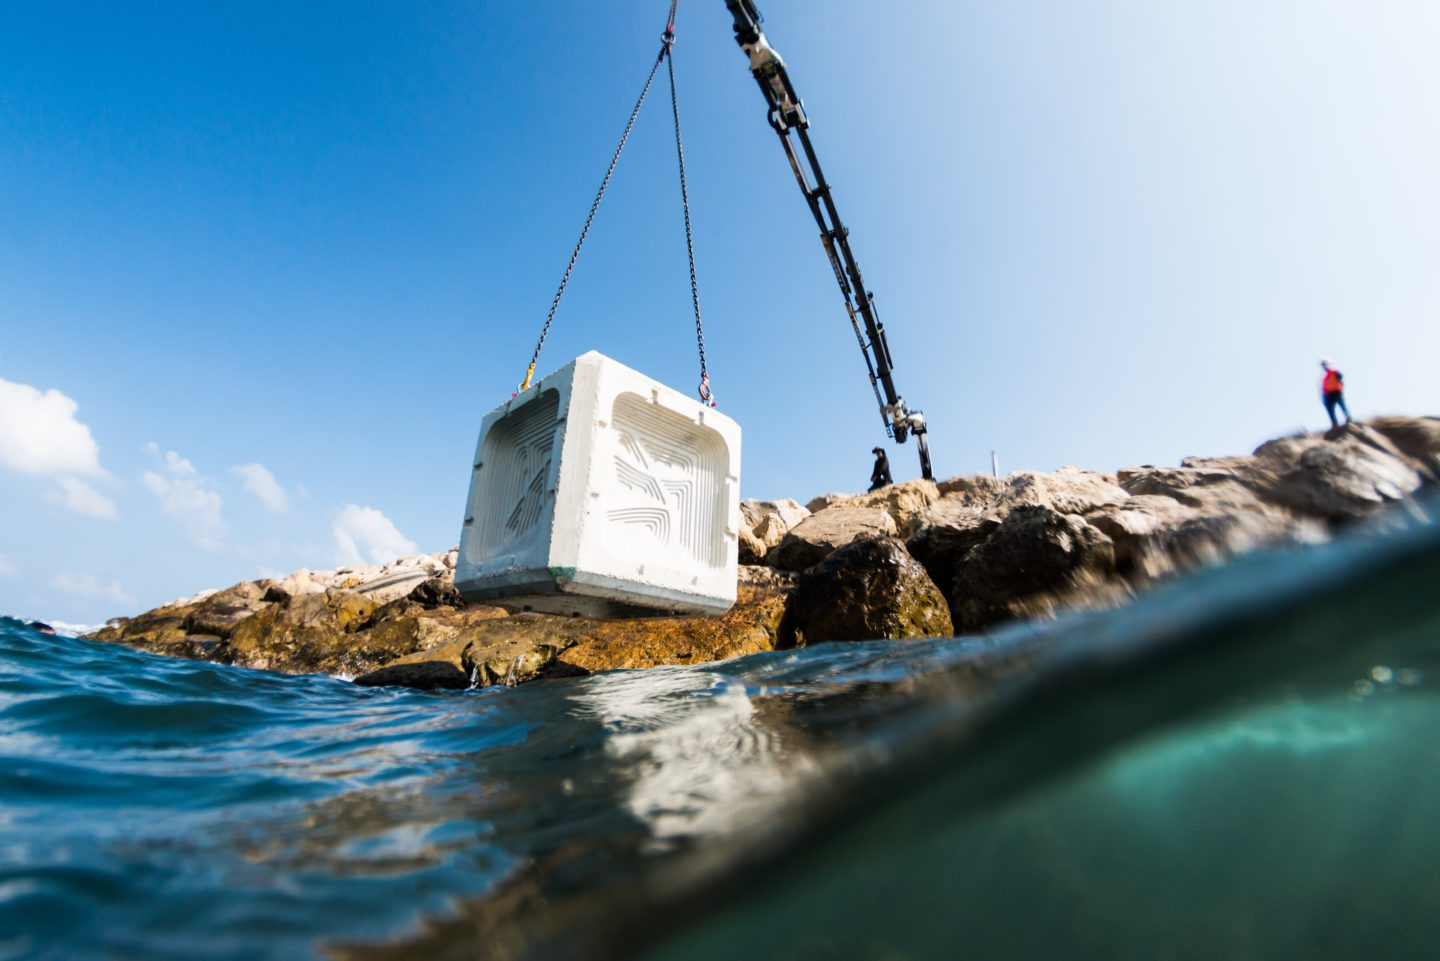 An Israeli initiative is offering concrete solutions to battered coastlines |The Switchers